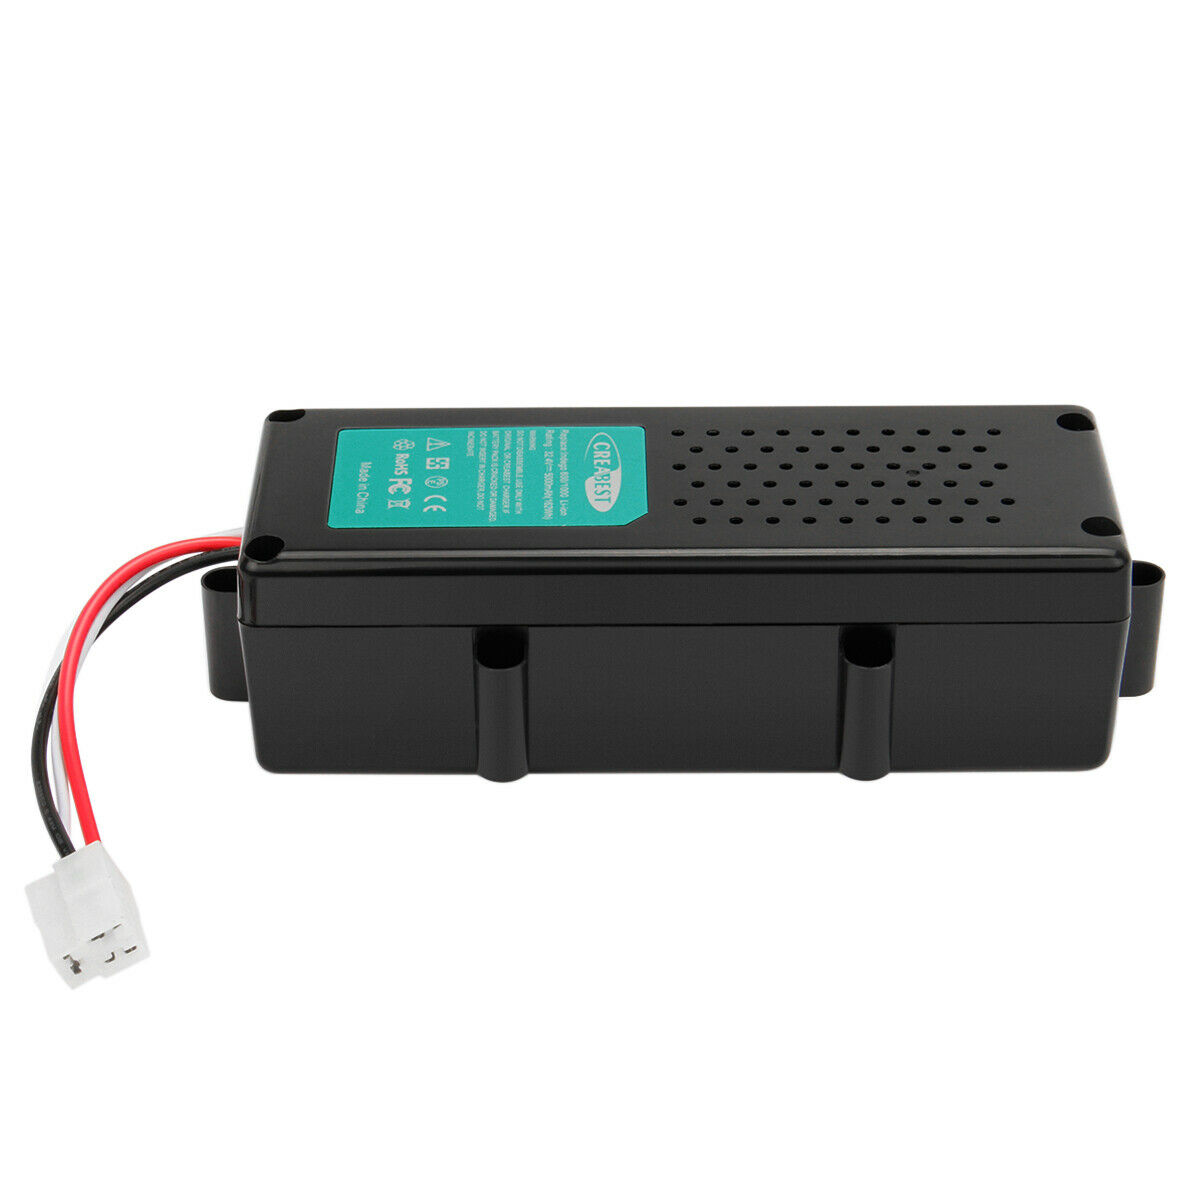 32.4V 5.0AH Li-ion Bosch Indego 1100,1200,1300,10C,13C,3600 Connect batteria compatibile